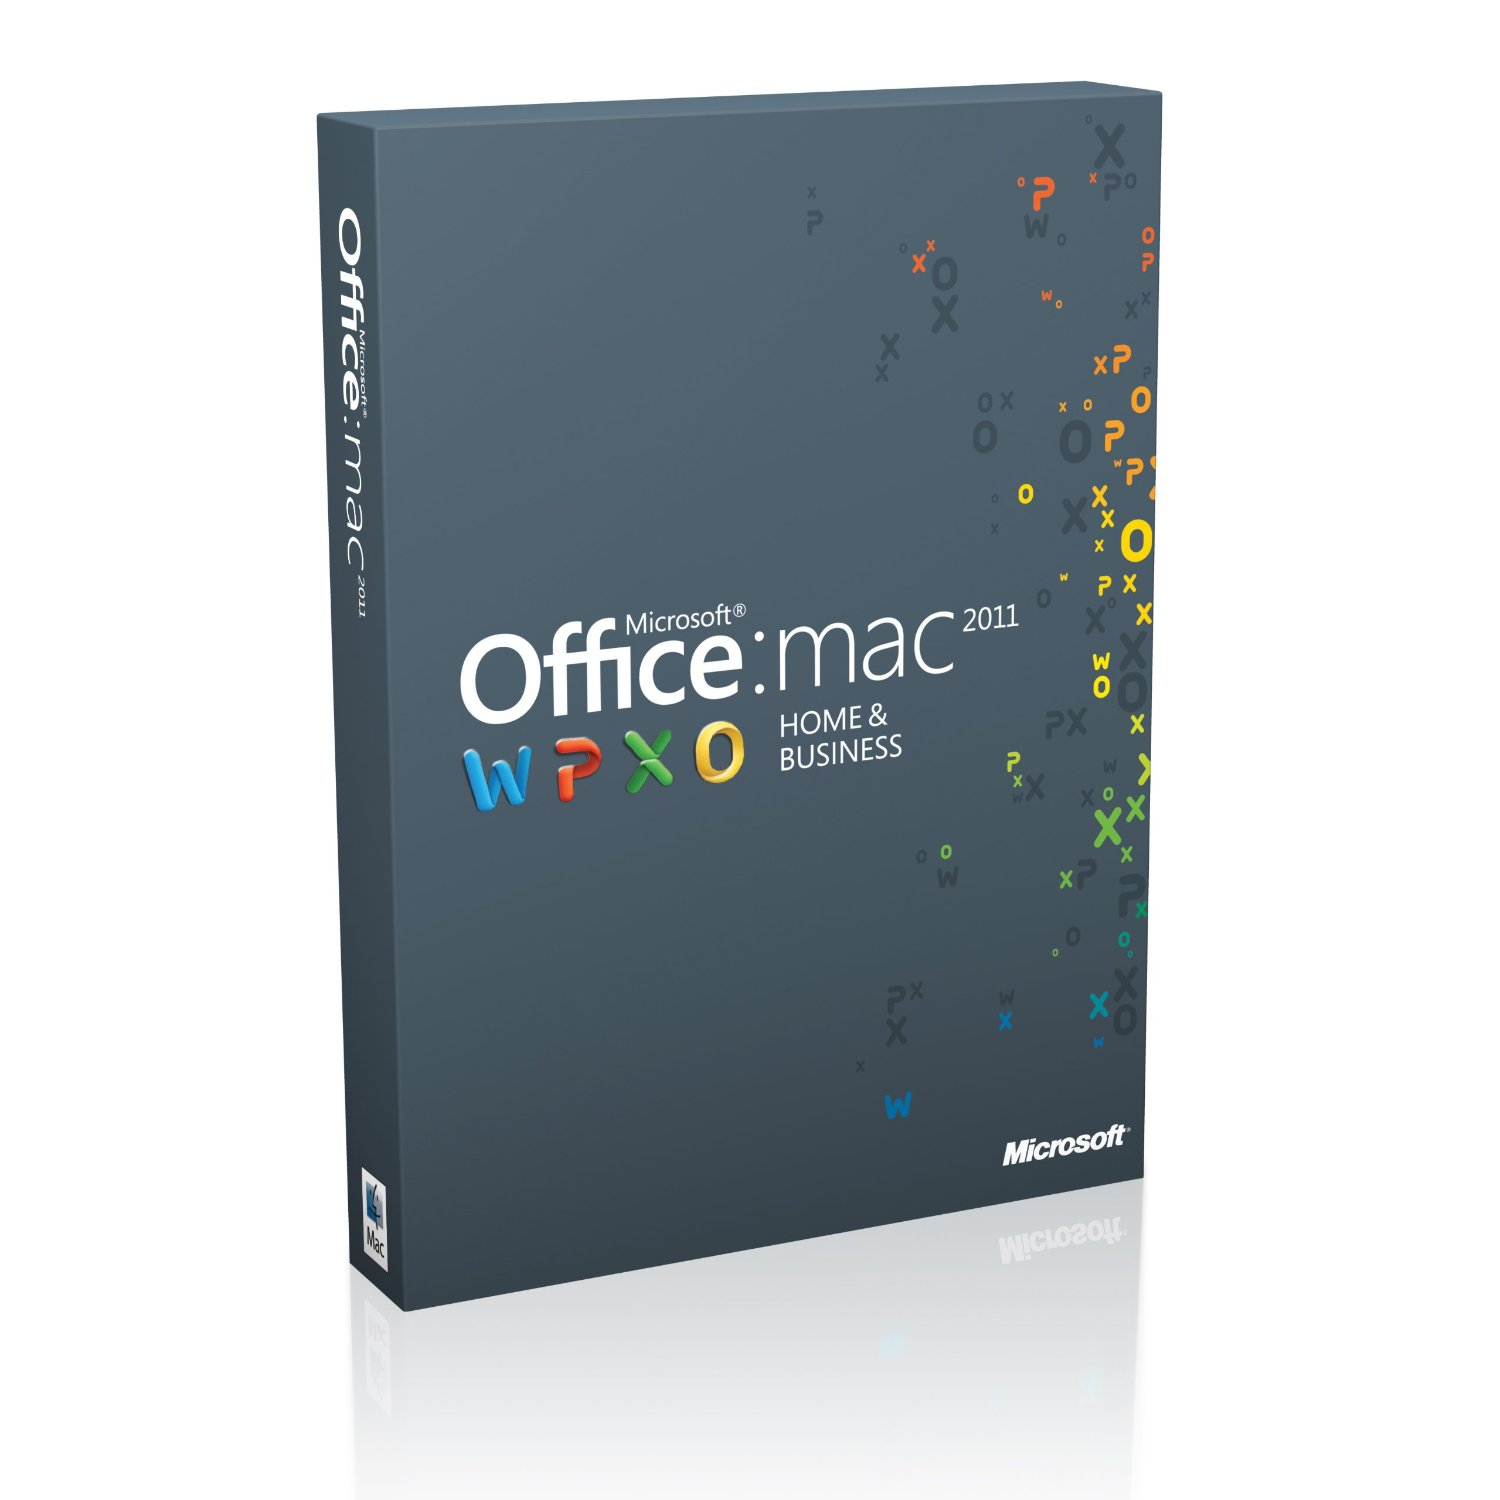 ms office 2011 for mac trial